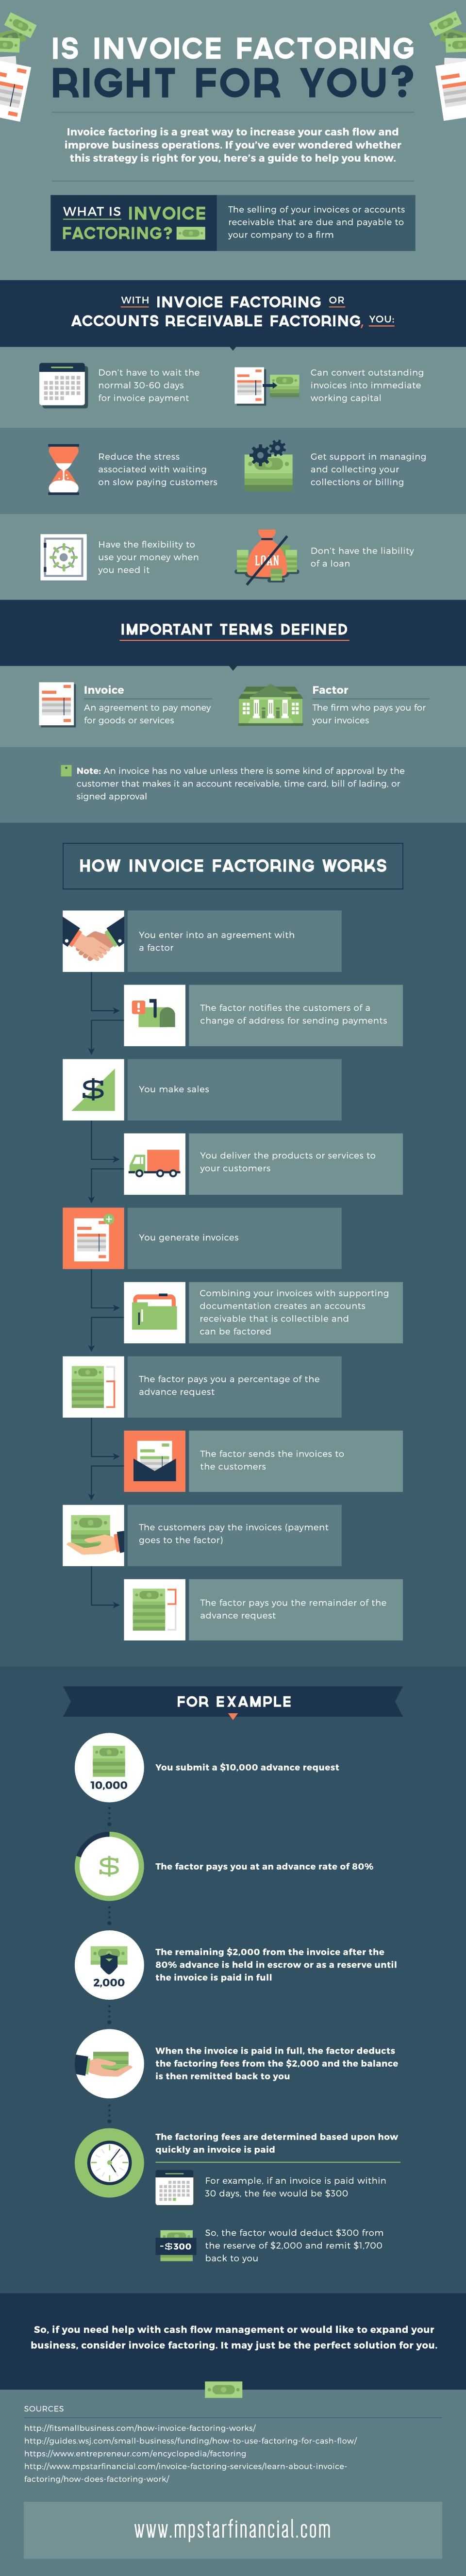 Is invoice factoring right for you  Is Invoice Factoring Right for You  MPStarFinancial Infographic